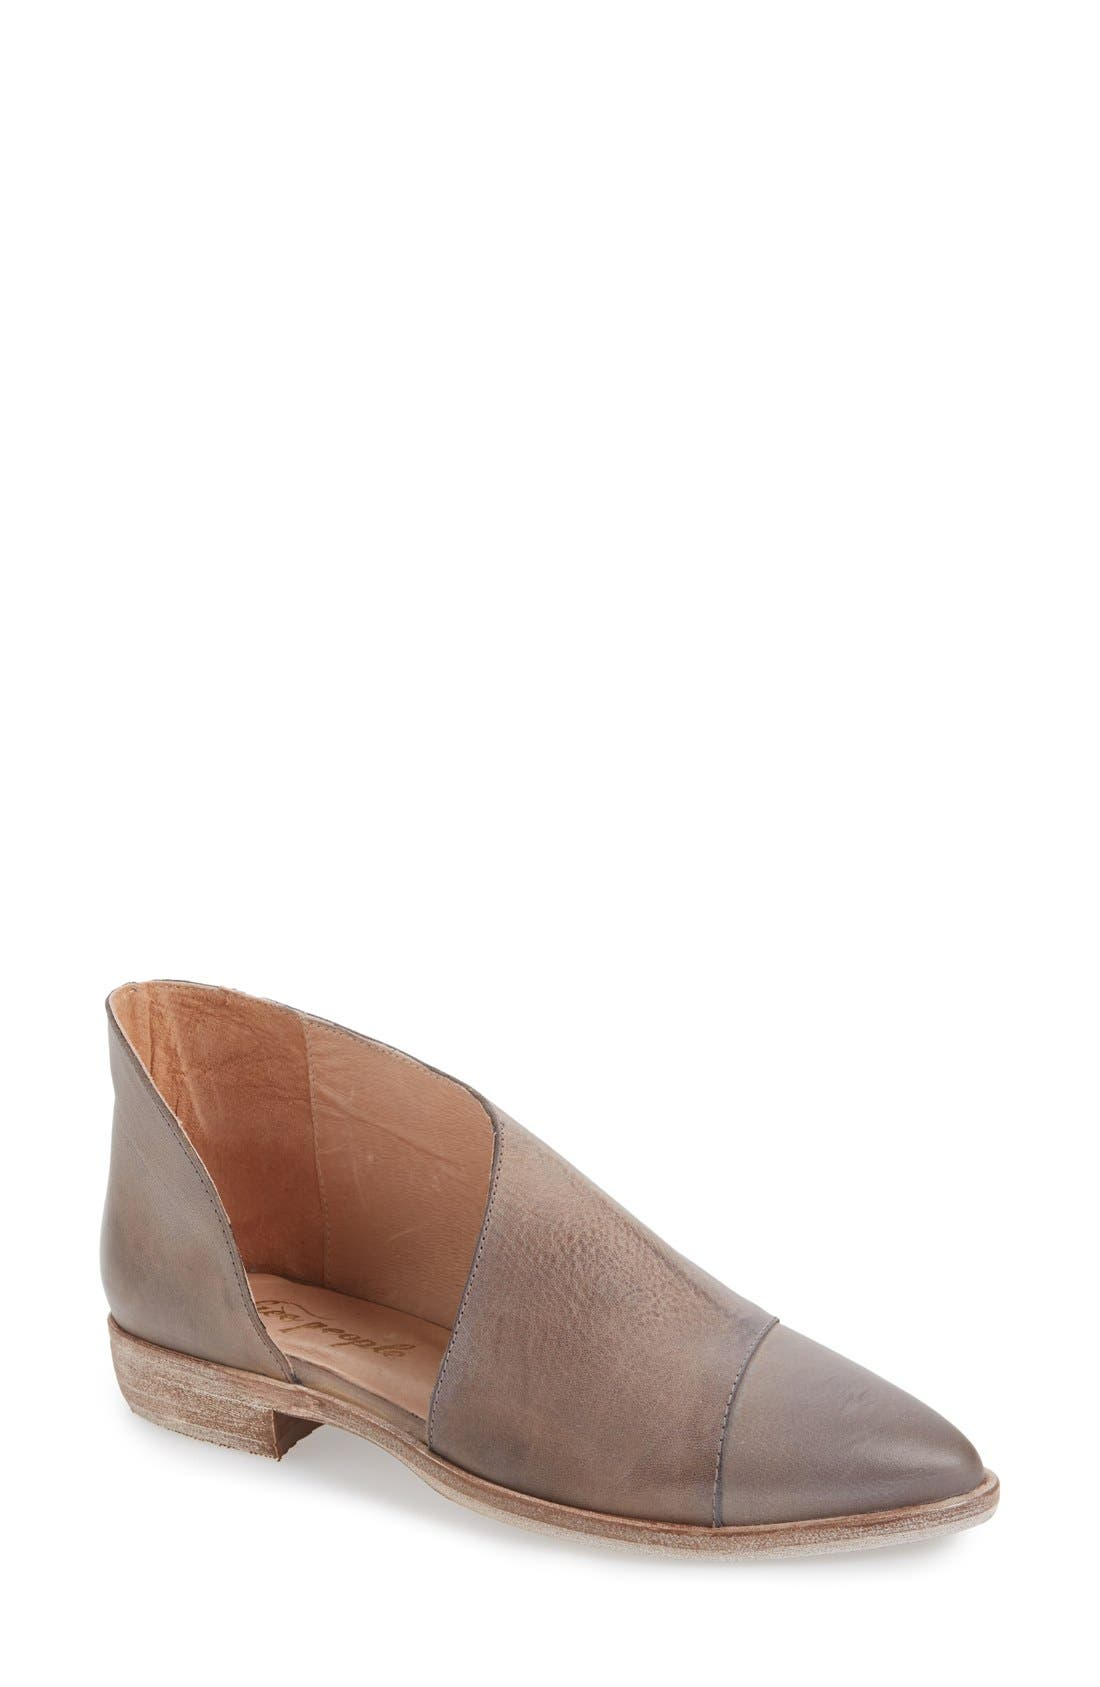 FREE PEOPLE, 'Royale' Pointy Toe Flat, Main thumbnail 1, color, GREY LEATHER